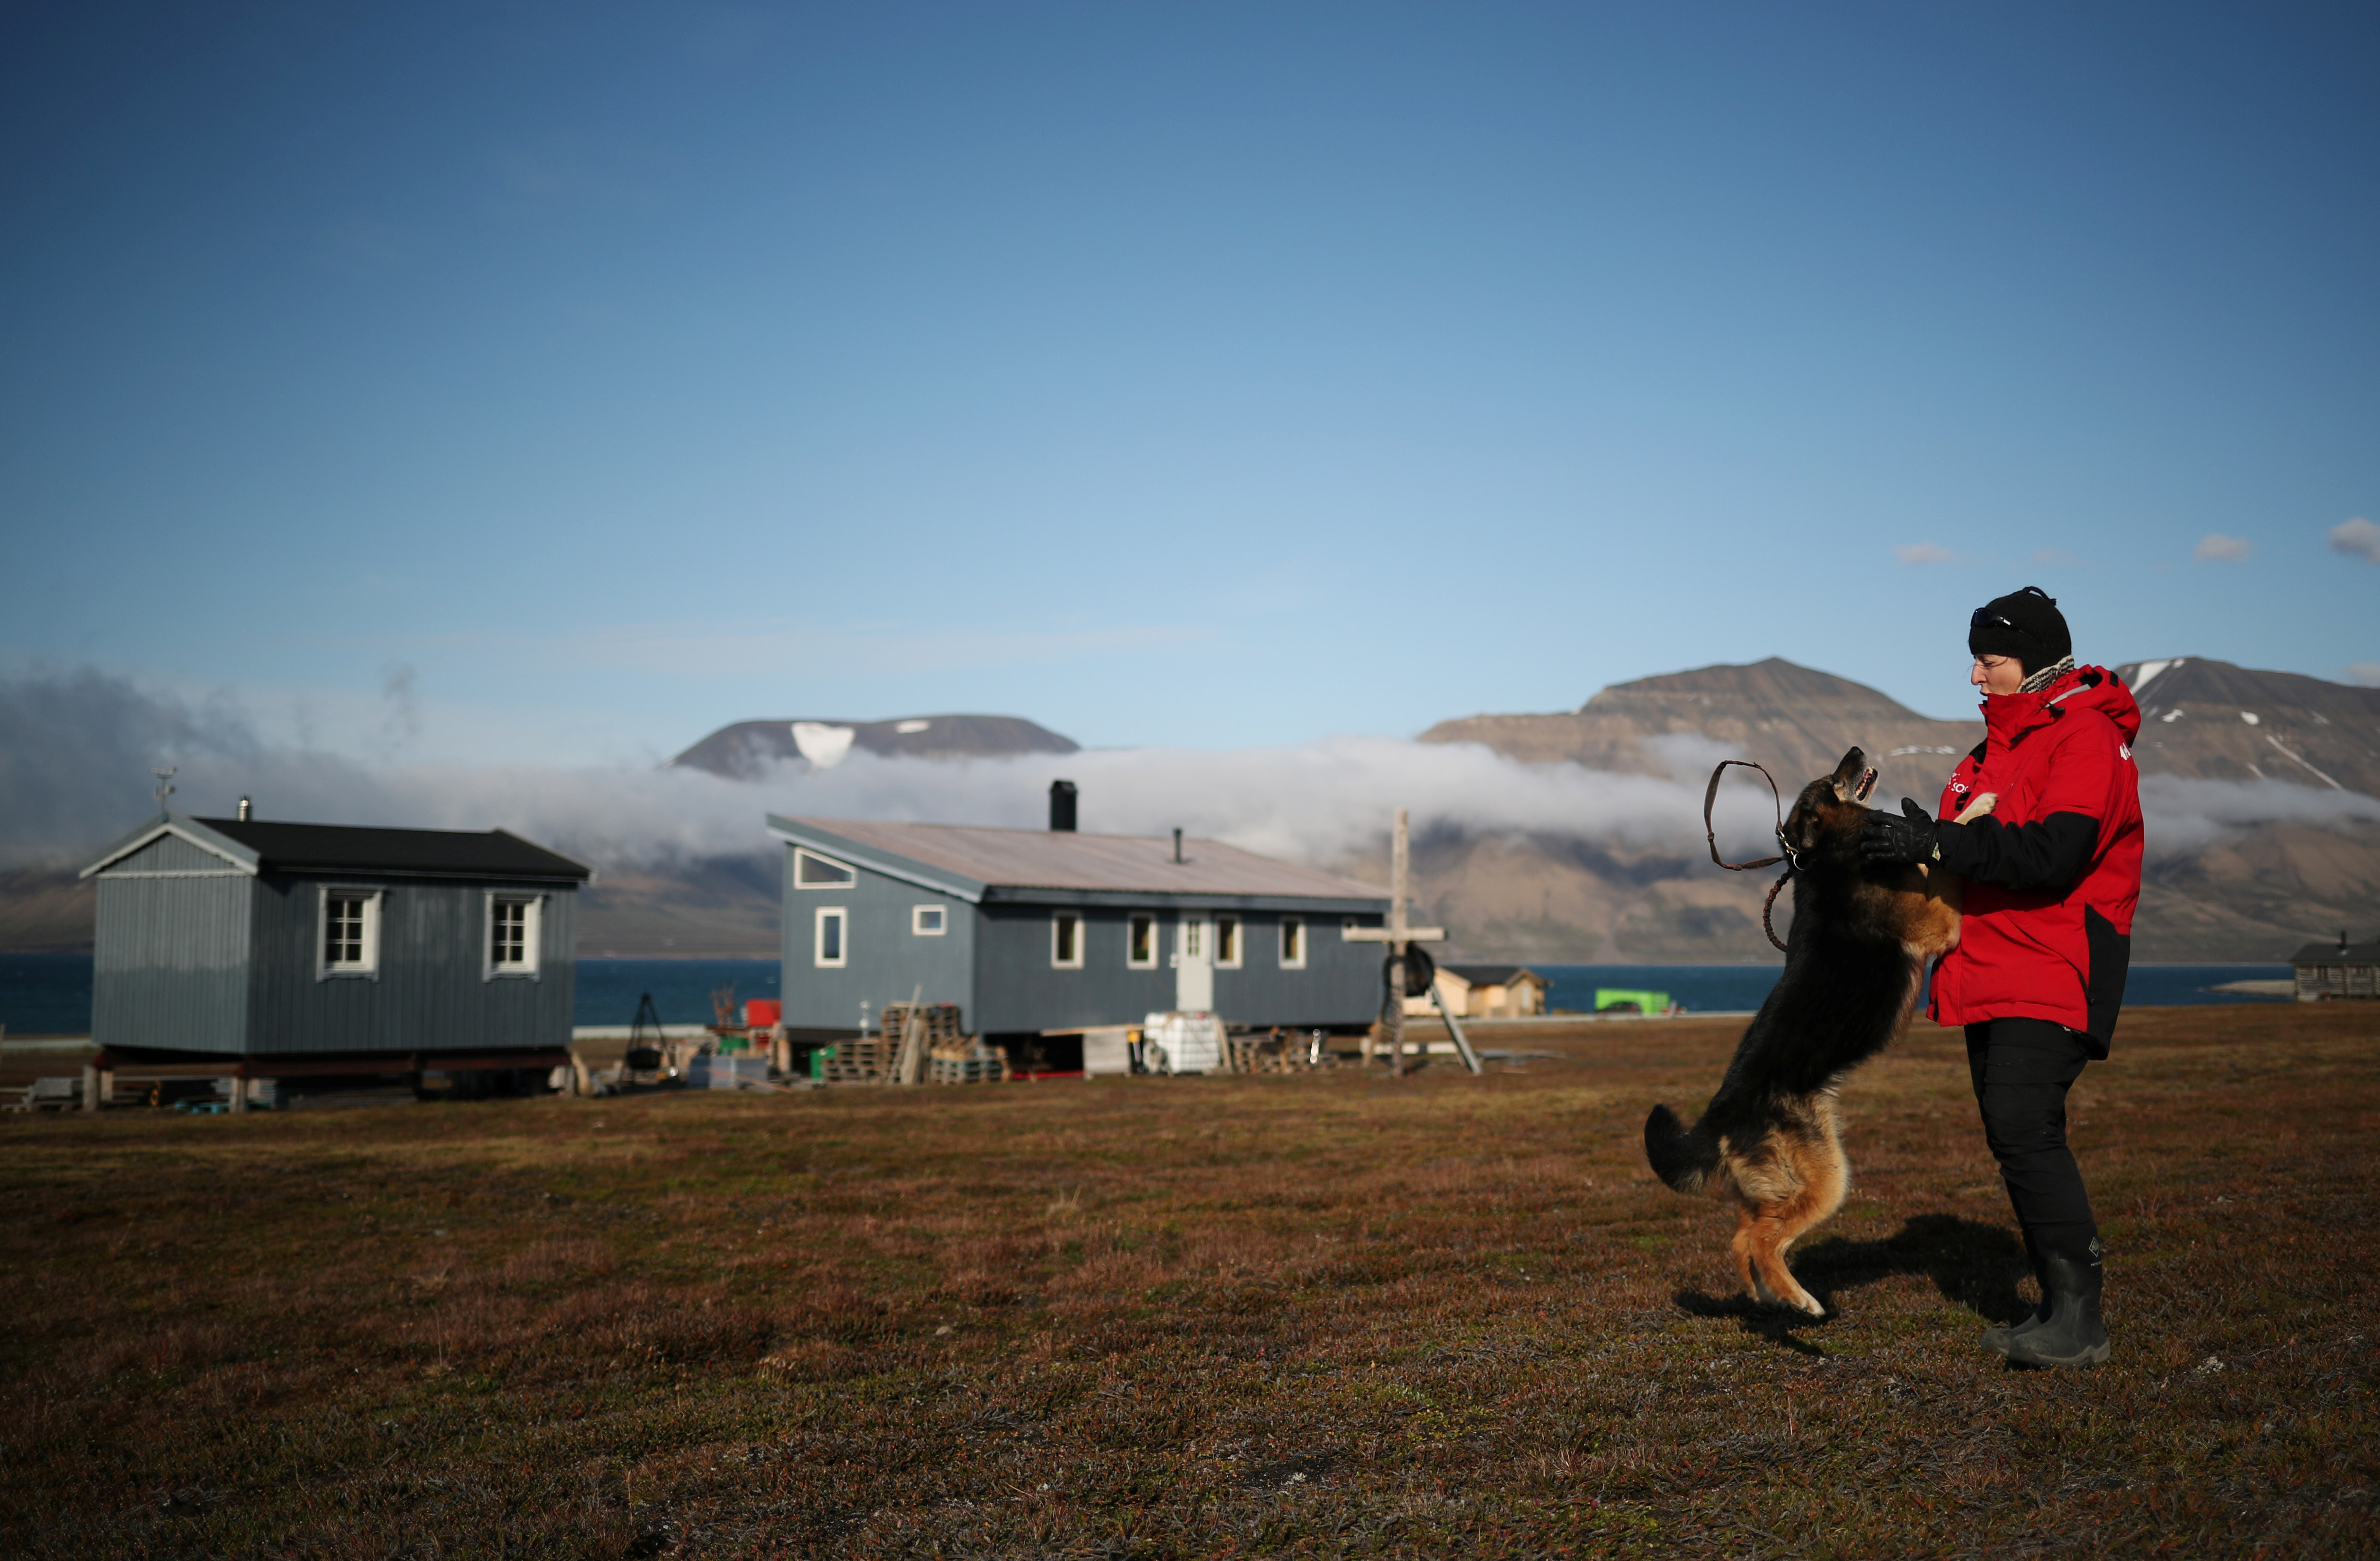 Christiane Huebner plays with her dog Svea in front of her home in the town of Longyearbyen, in Svalbard, Norway, August 3, 2019. Three years ago, as winter approached, 13 meters of coastline fell away overnight, leaving Huebner's cabin perilously close to the fjord. Huebner, her family of three and their husky dogs abandoned the home.